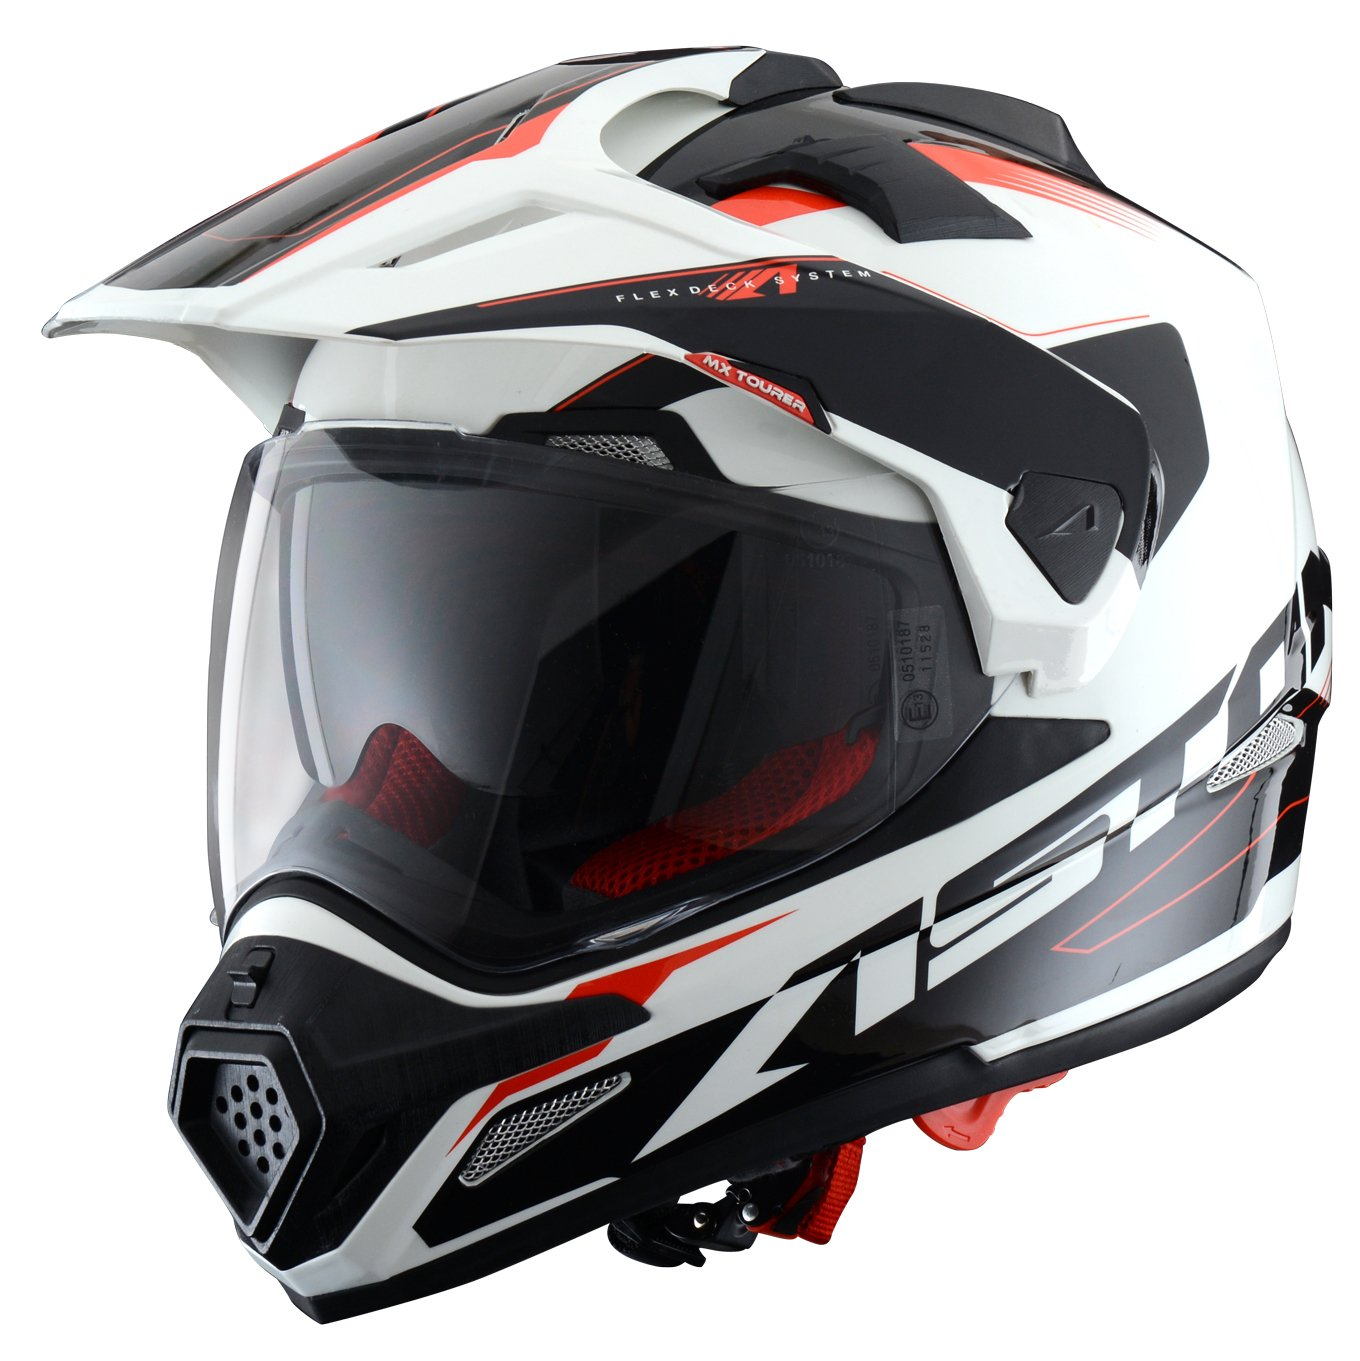 Astone Helmets Adventure-Tourer, Auriculares, color Blanco, talla S: Amazon.es: Coche y moto